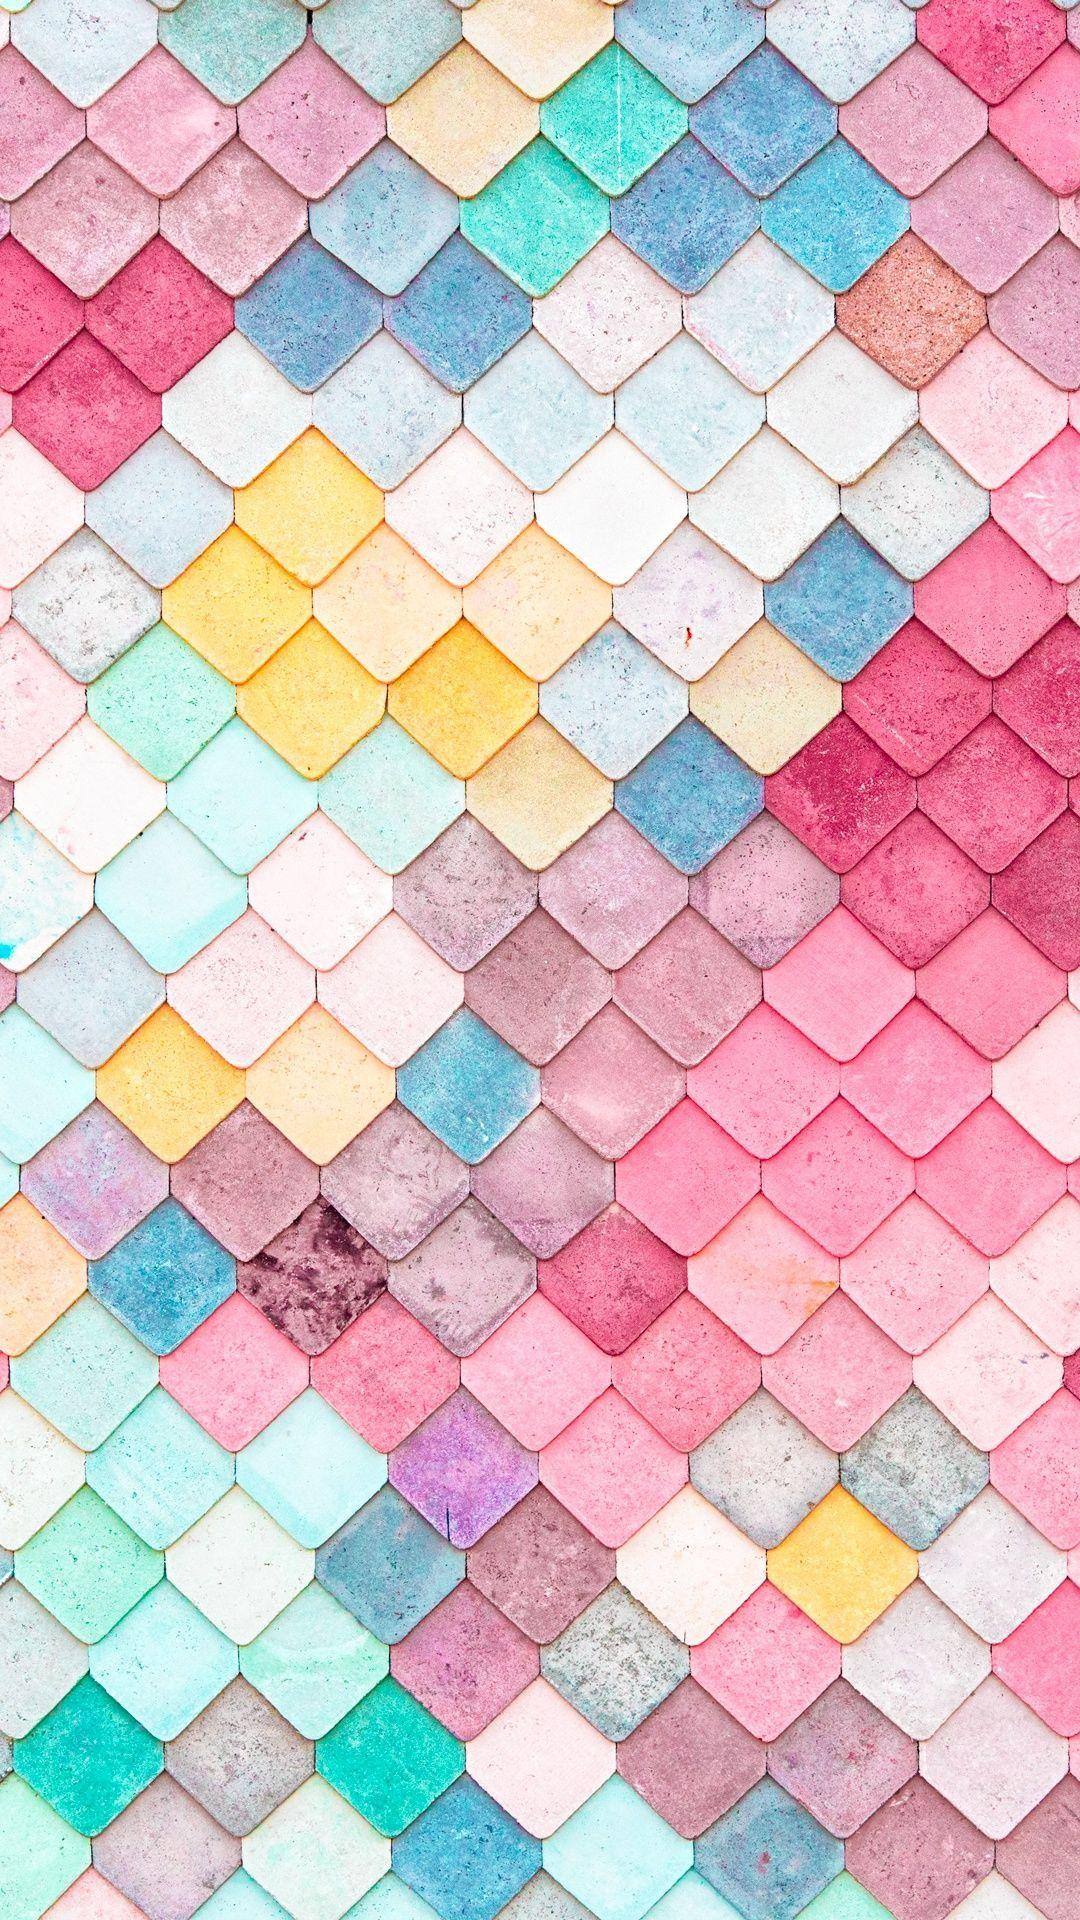 Colorful Patterns Wallpapers Wallpaper Cave